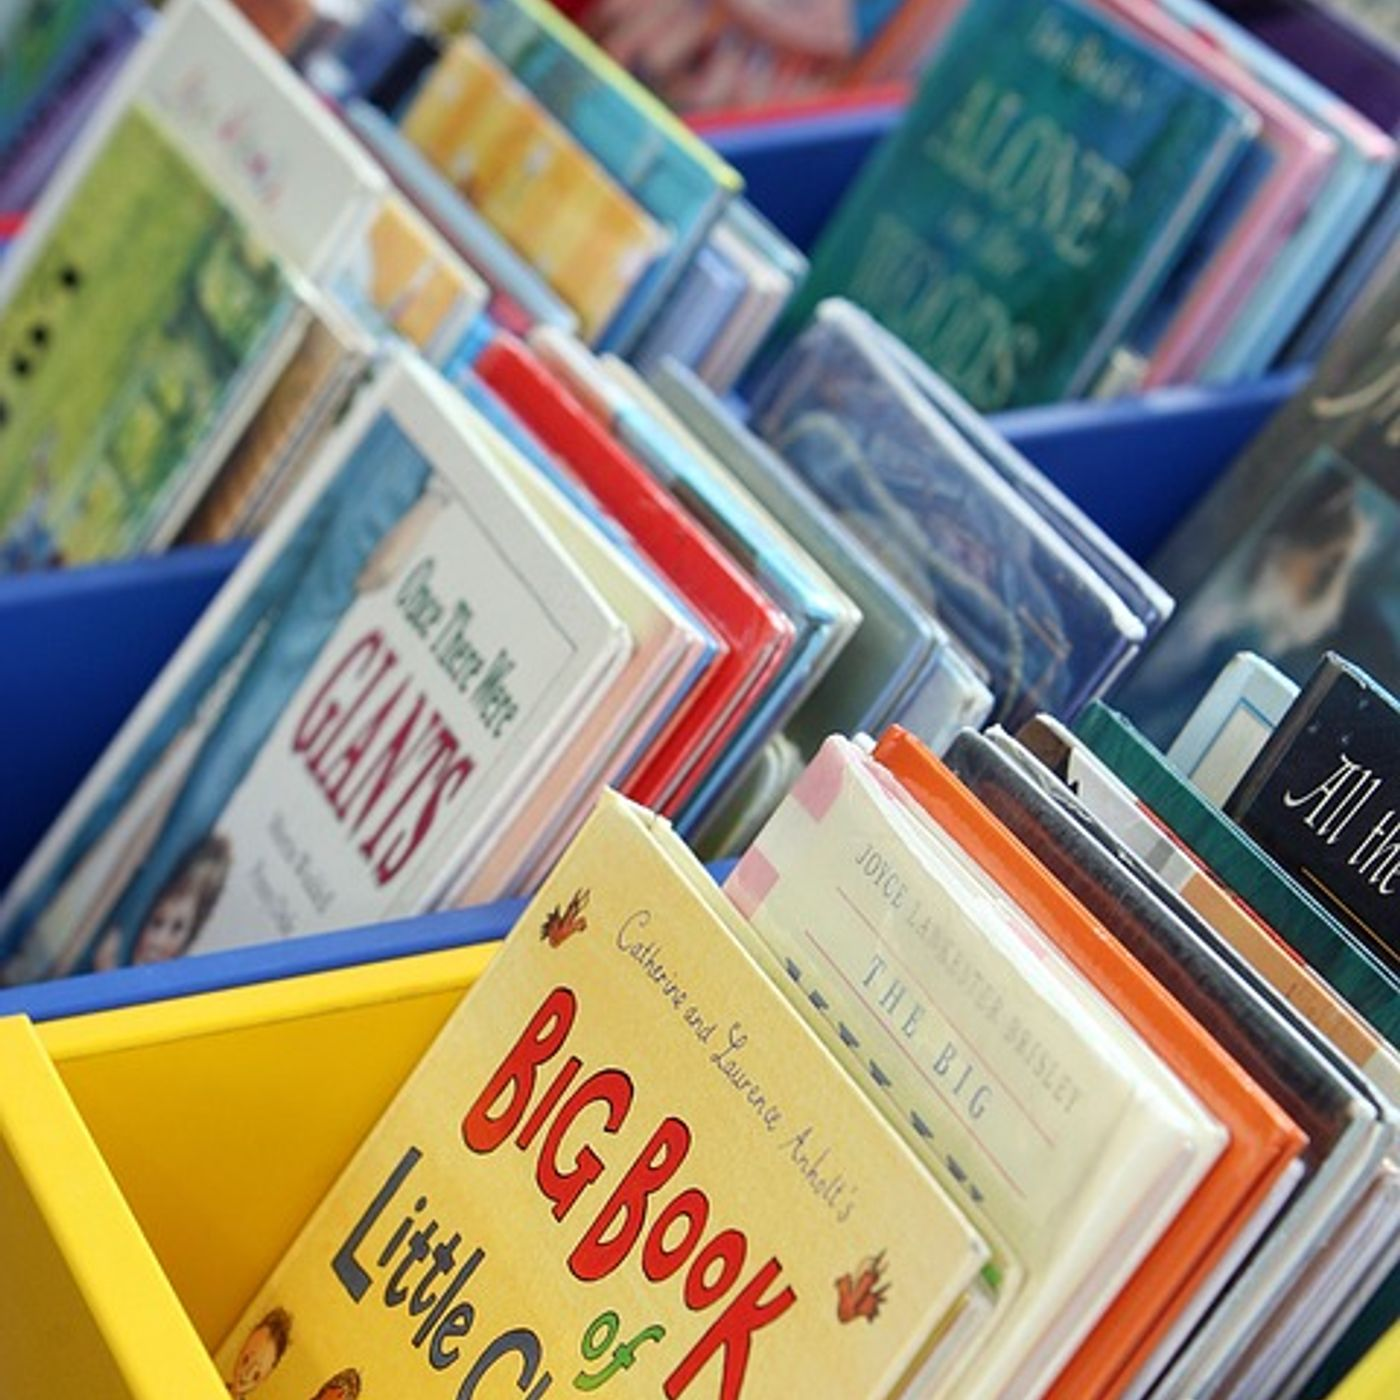 The Explore Book Mobile Will Hit The Road With 4,000 Books Thanks To Kares 4 Kids